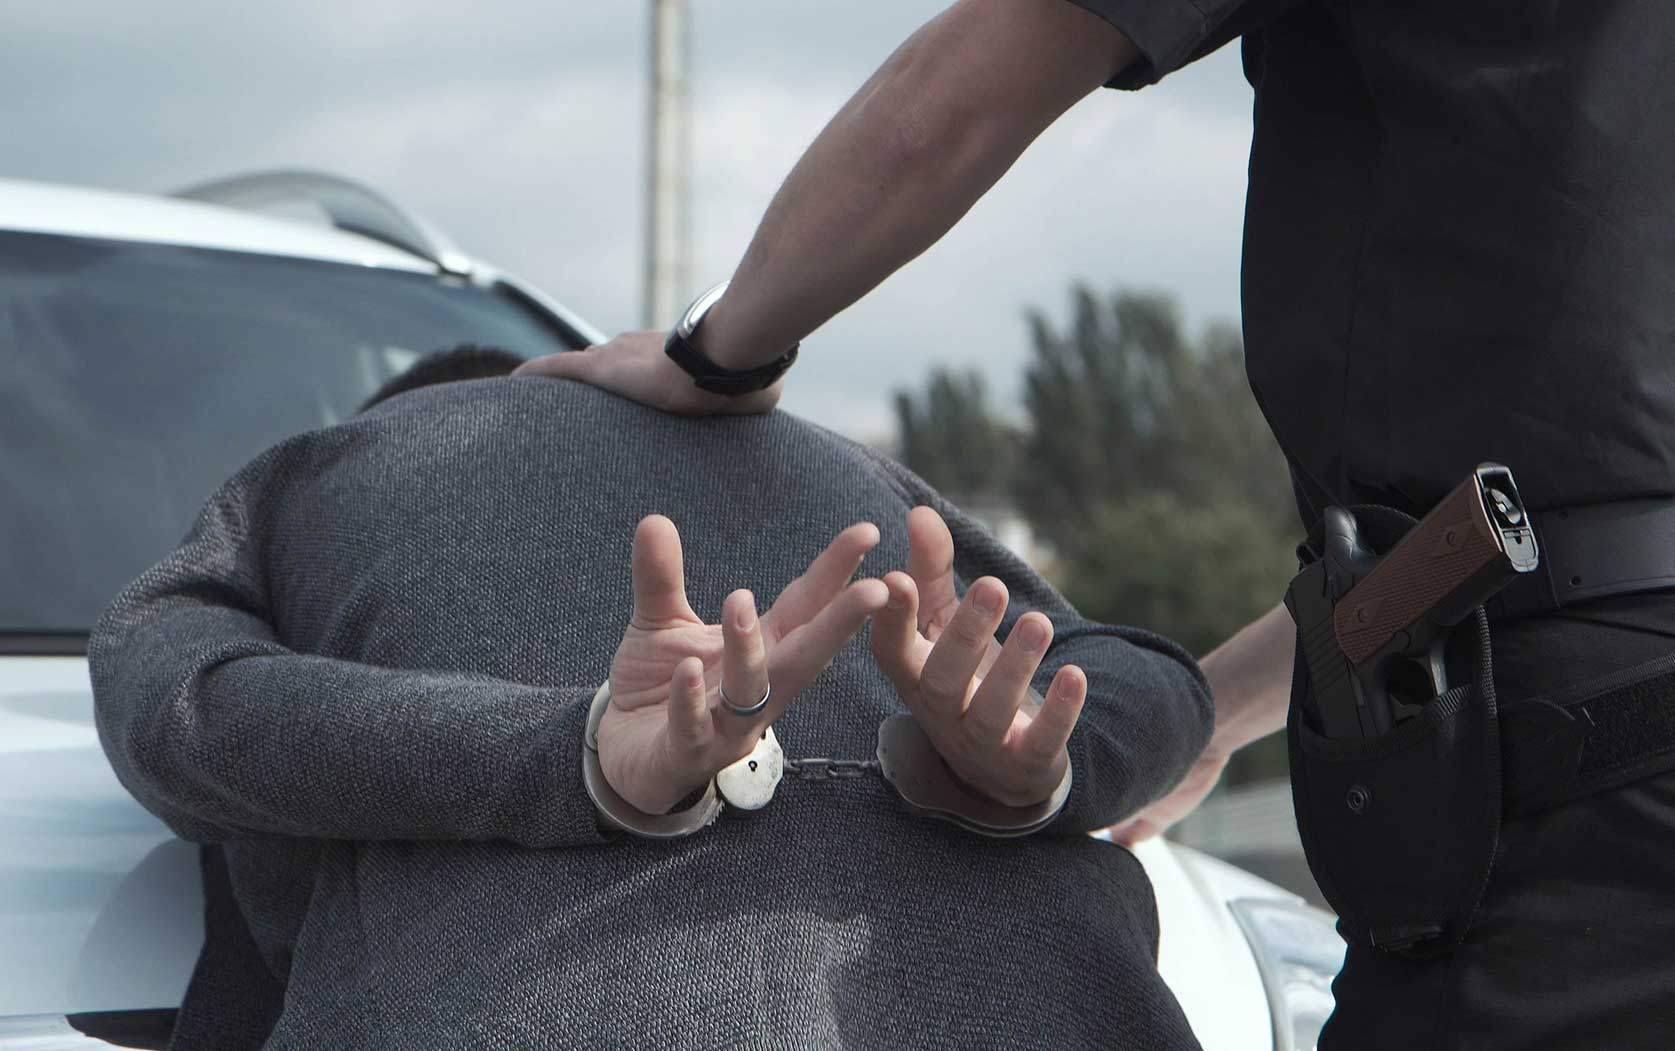 how to sue for unlawful arrest